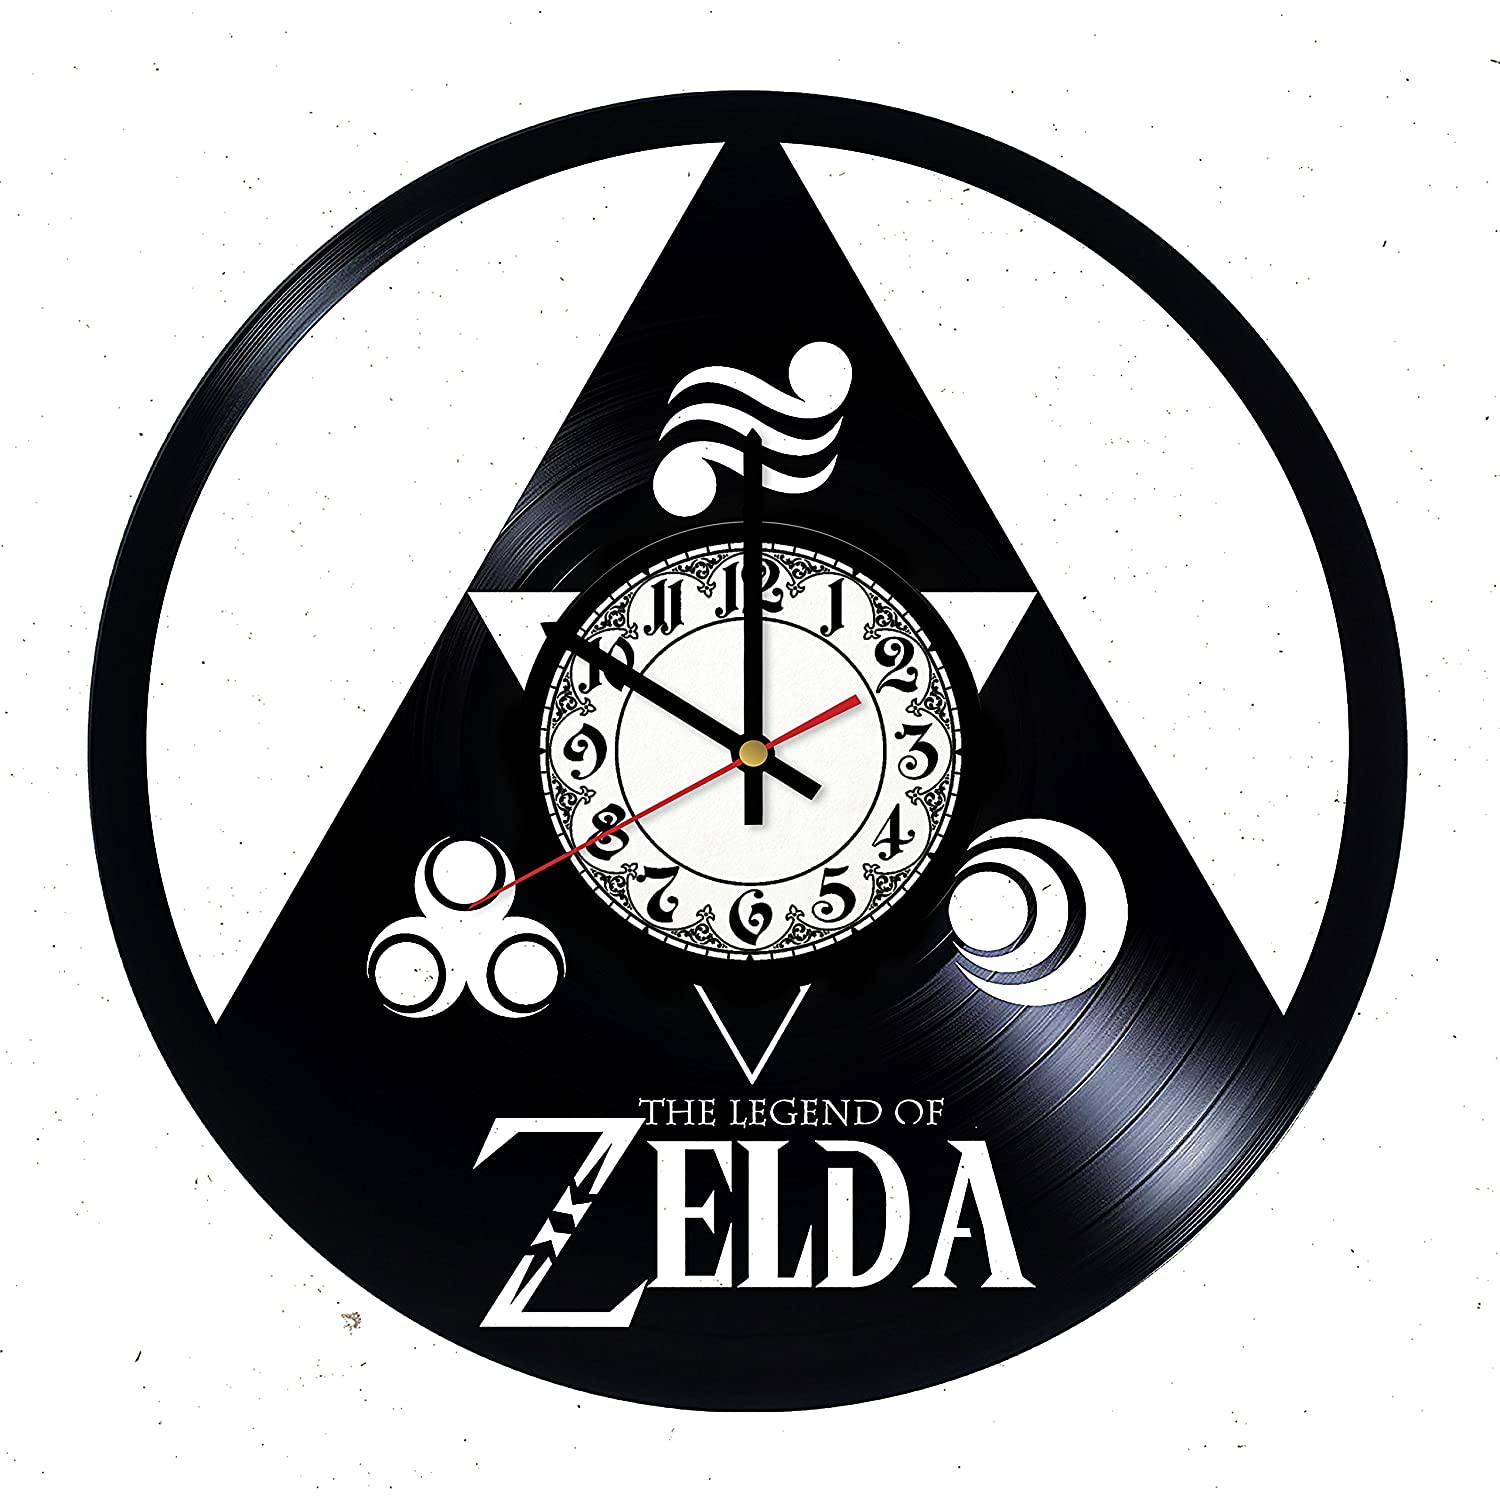 The Legend of Zelda Triforce Handmade Vinyl Record Wall Clock - Get unique room wall decor - Gift ideas for his and her – Modern Unique Home Art Design